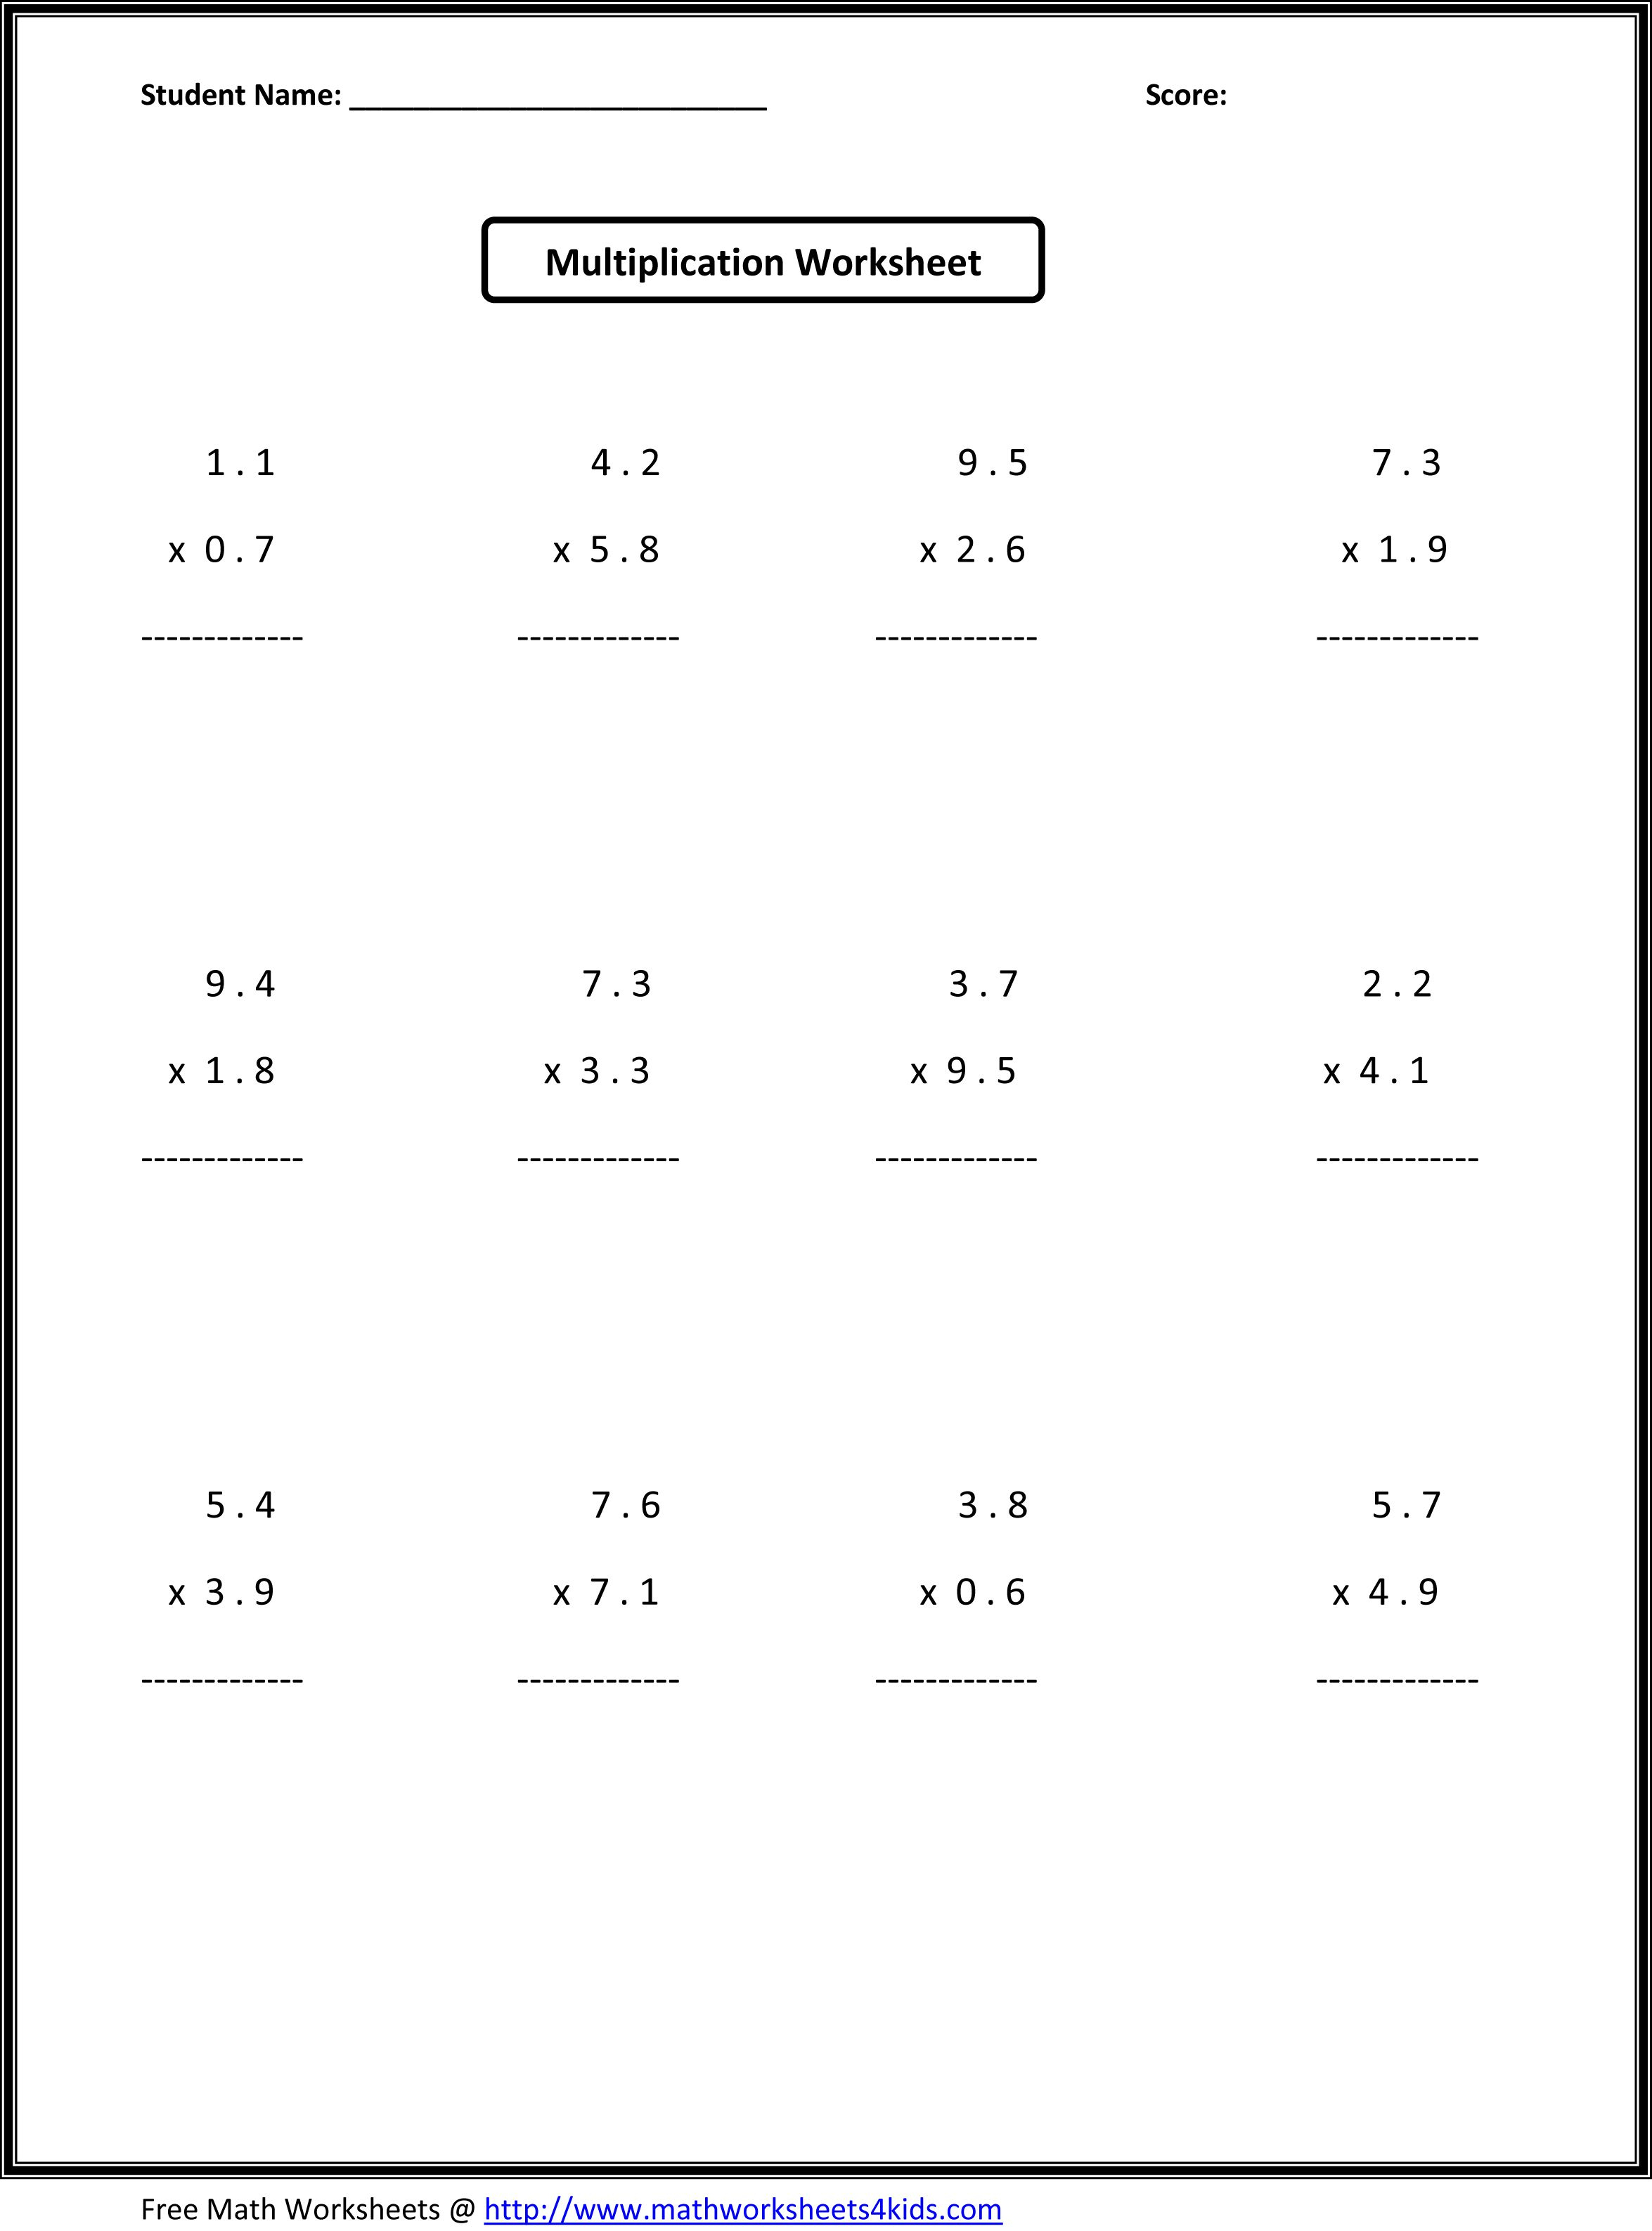 7Th Grade Math Worksheets | Value Worksheets Absolute Value - Free | Free Printable Math Worksheets 6Th Grade Order Operations